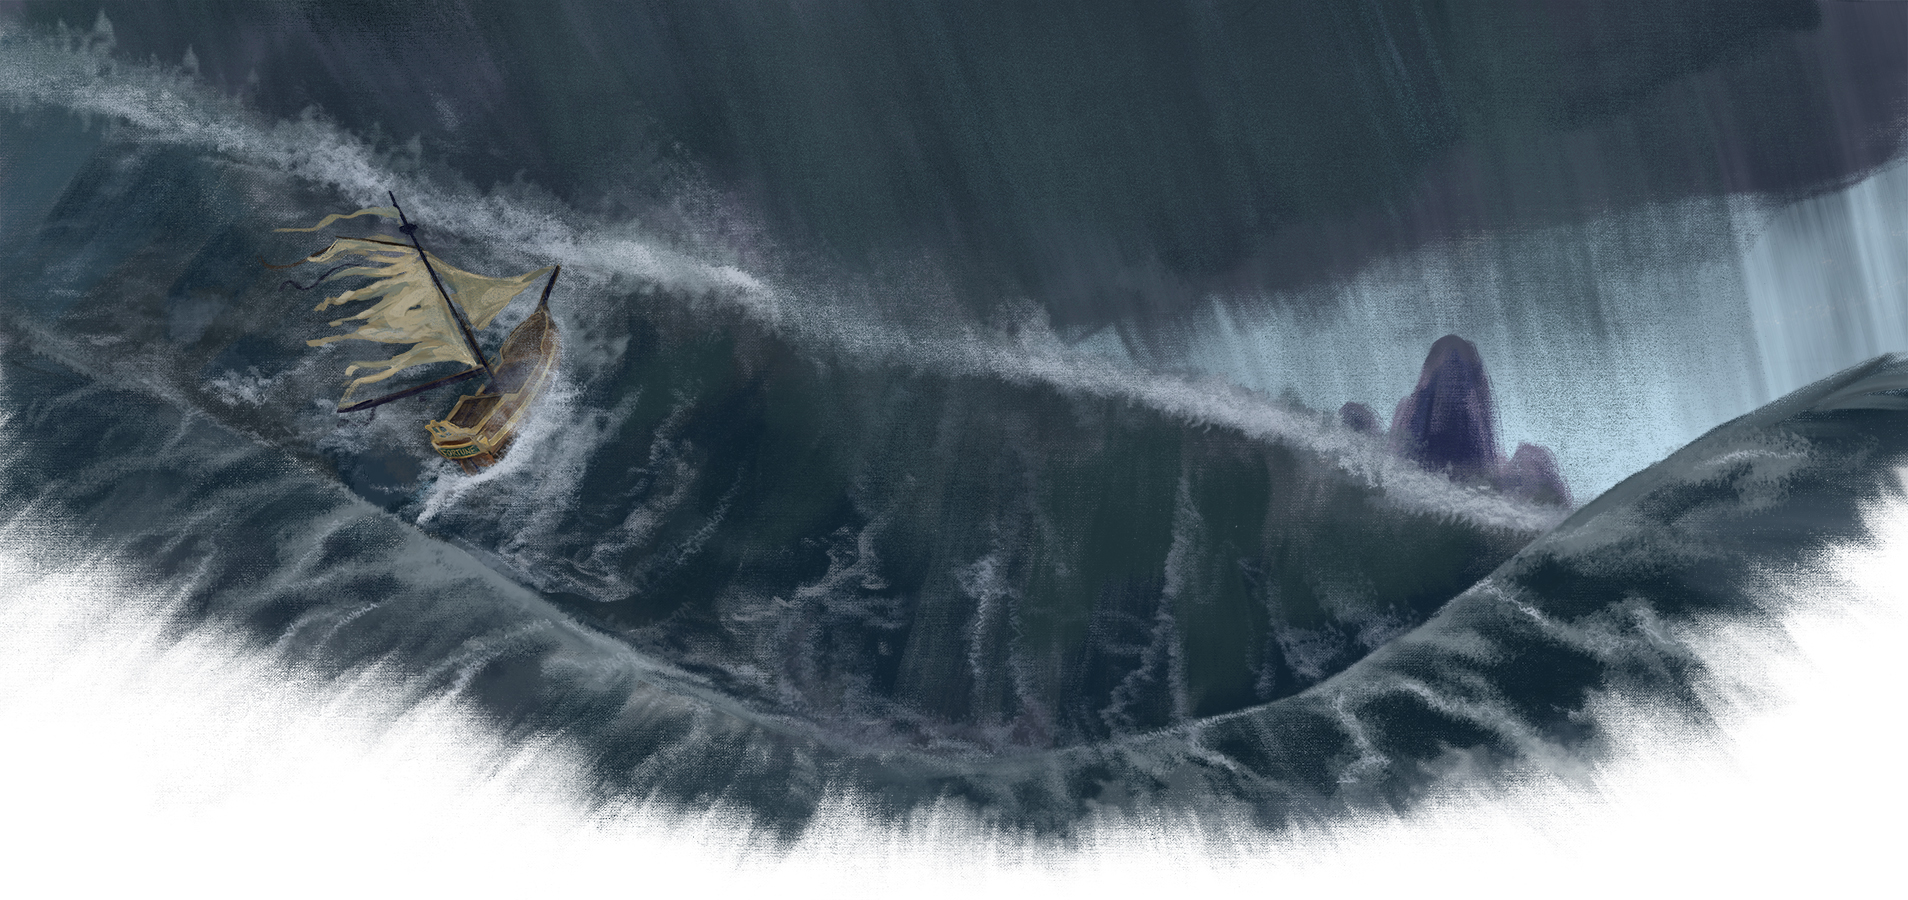 Ship on stormy water